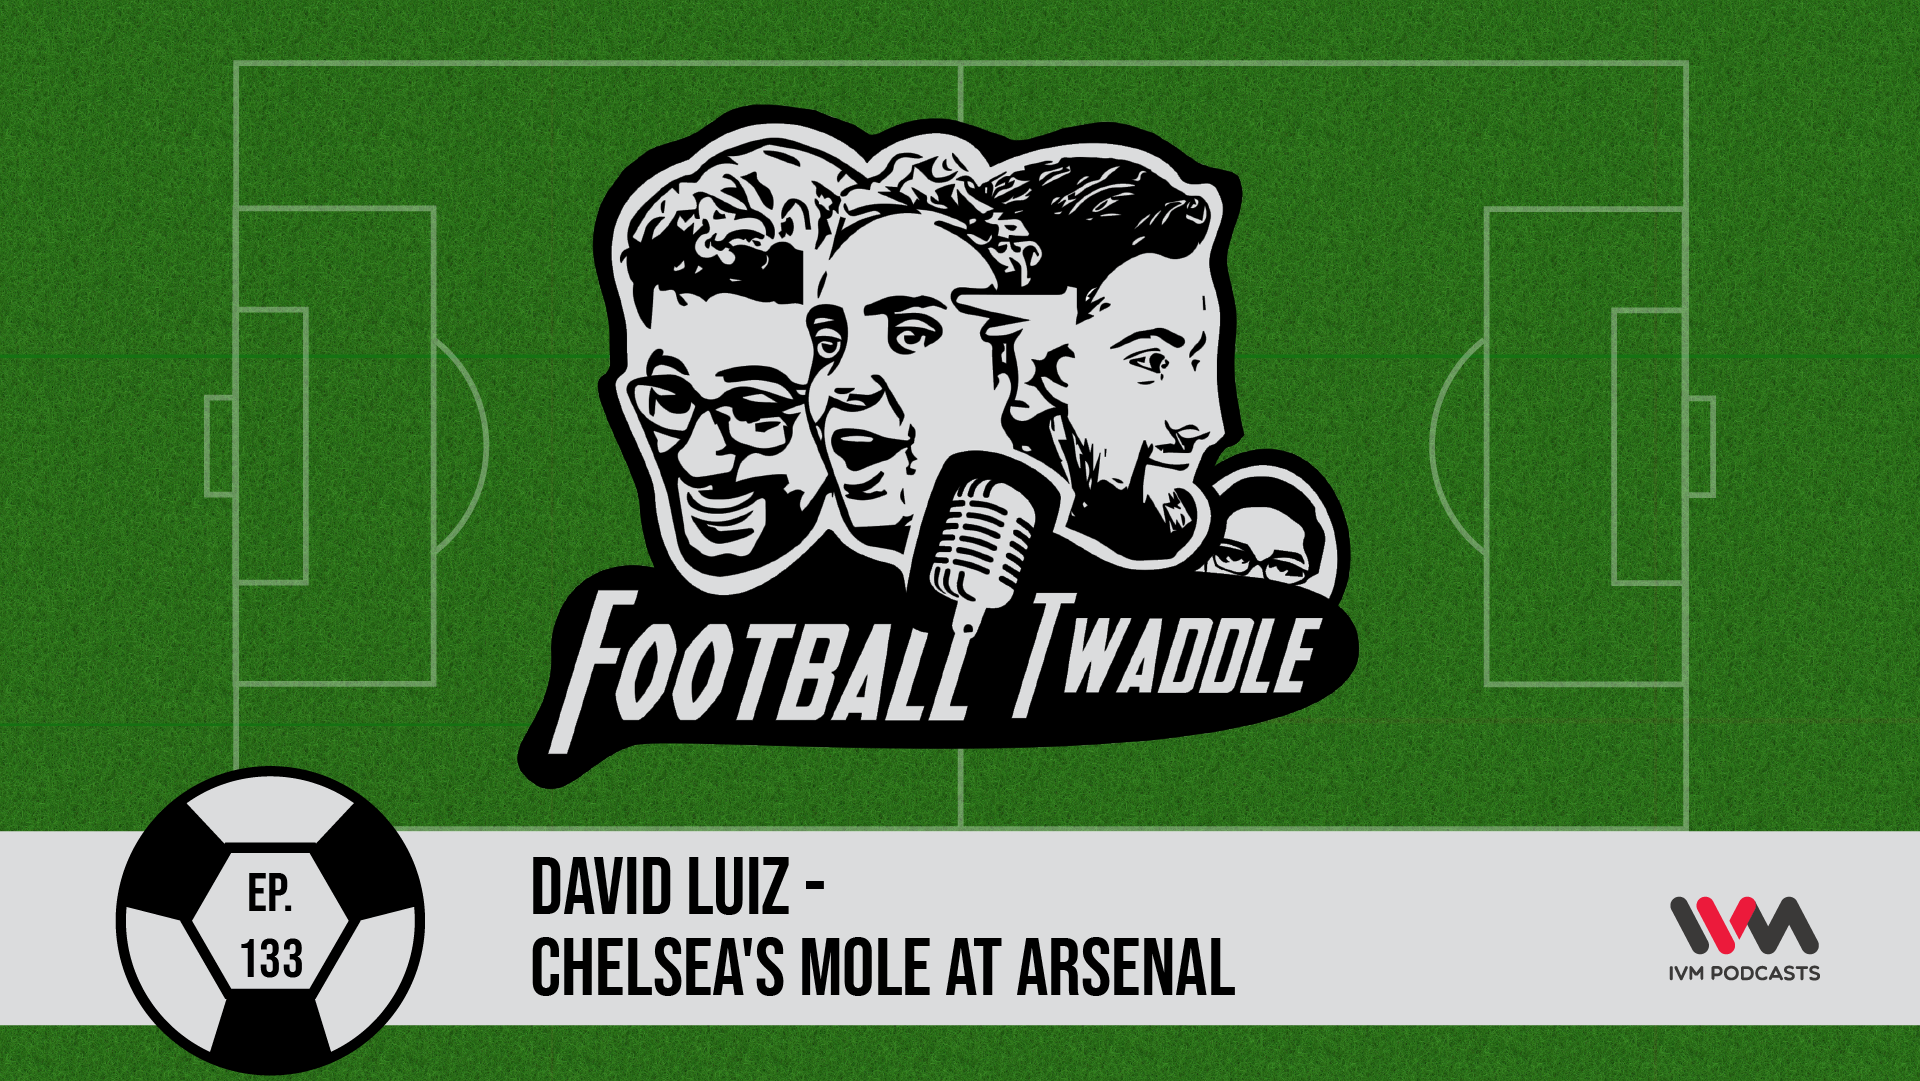 FootballTwaddleEpisode133.png